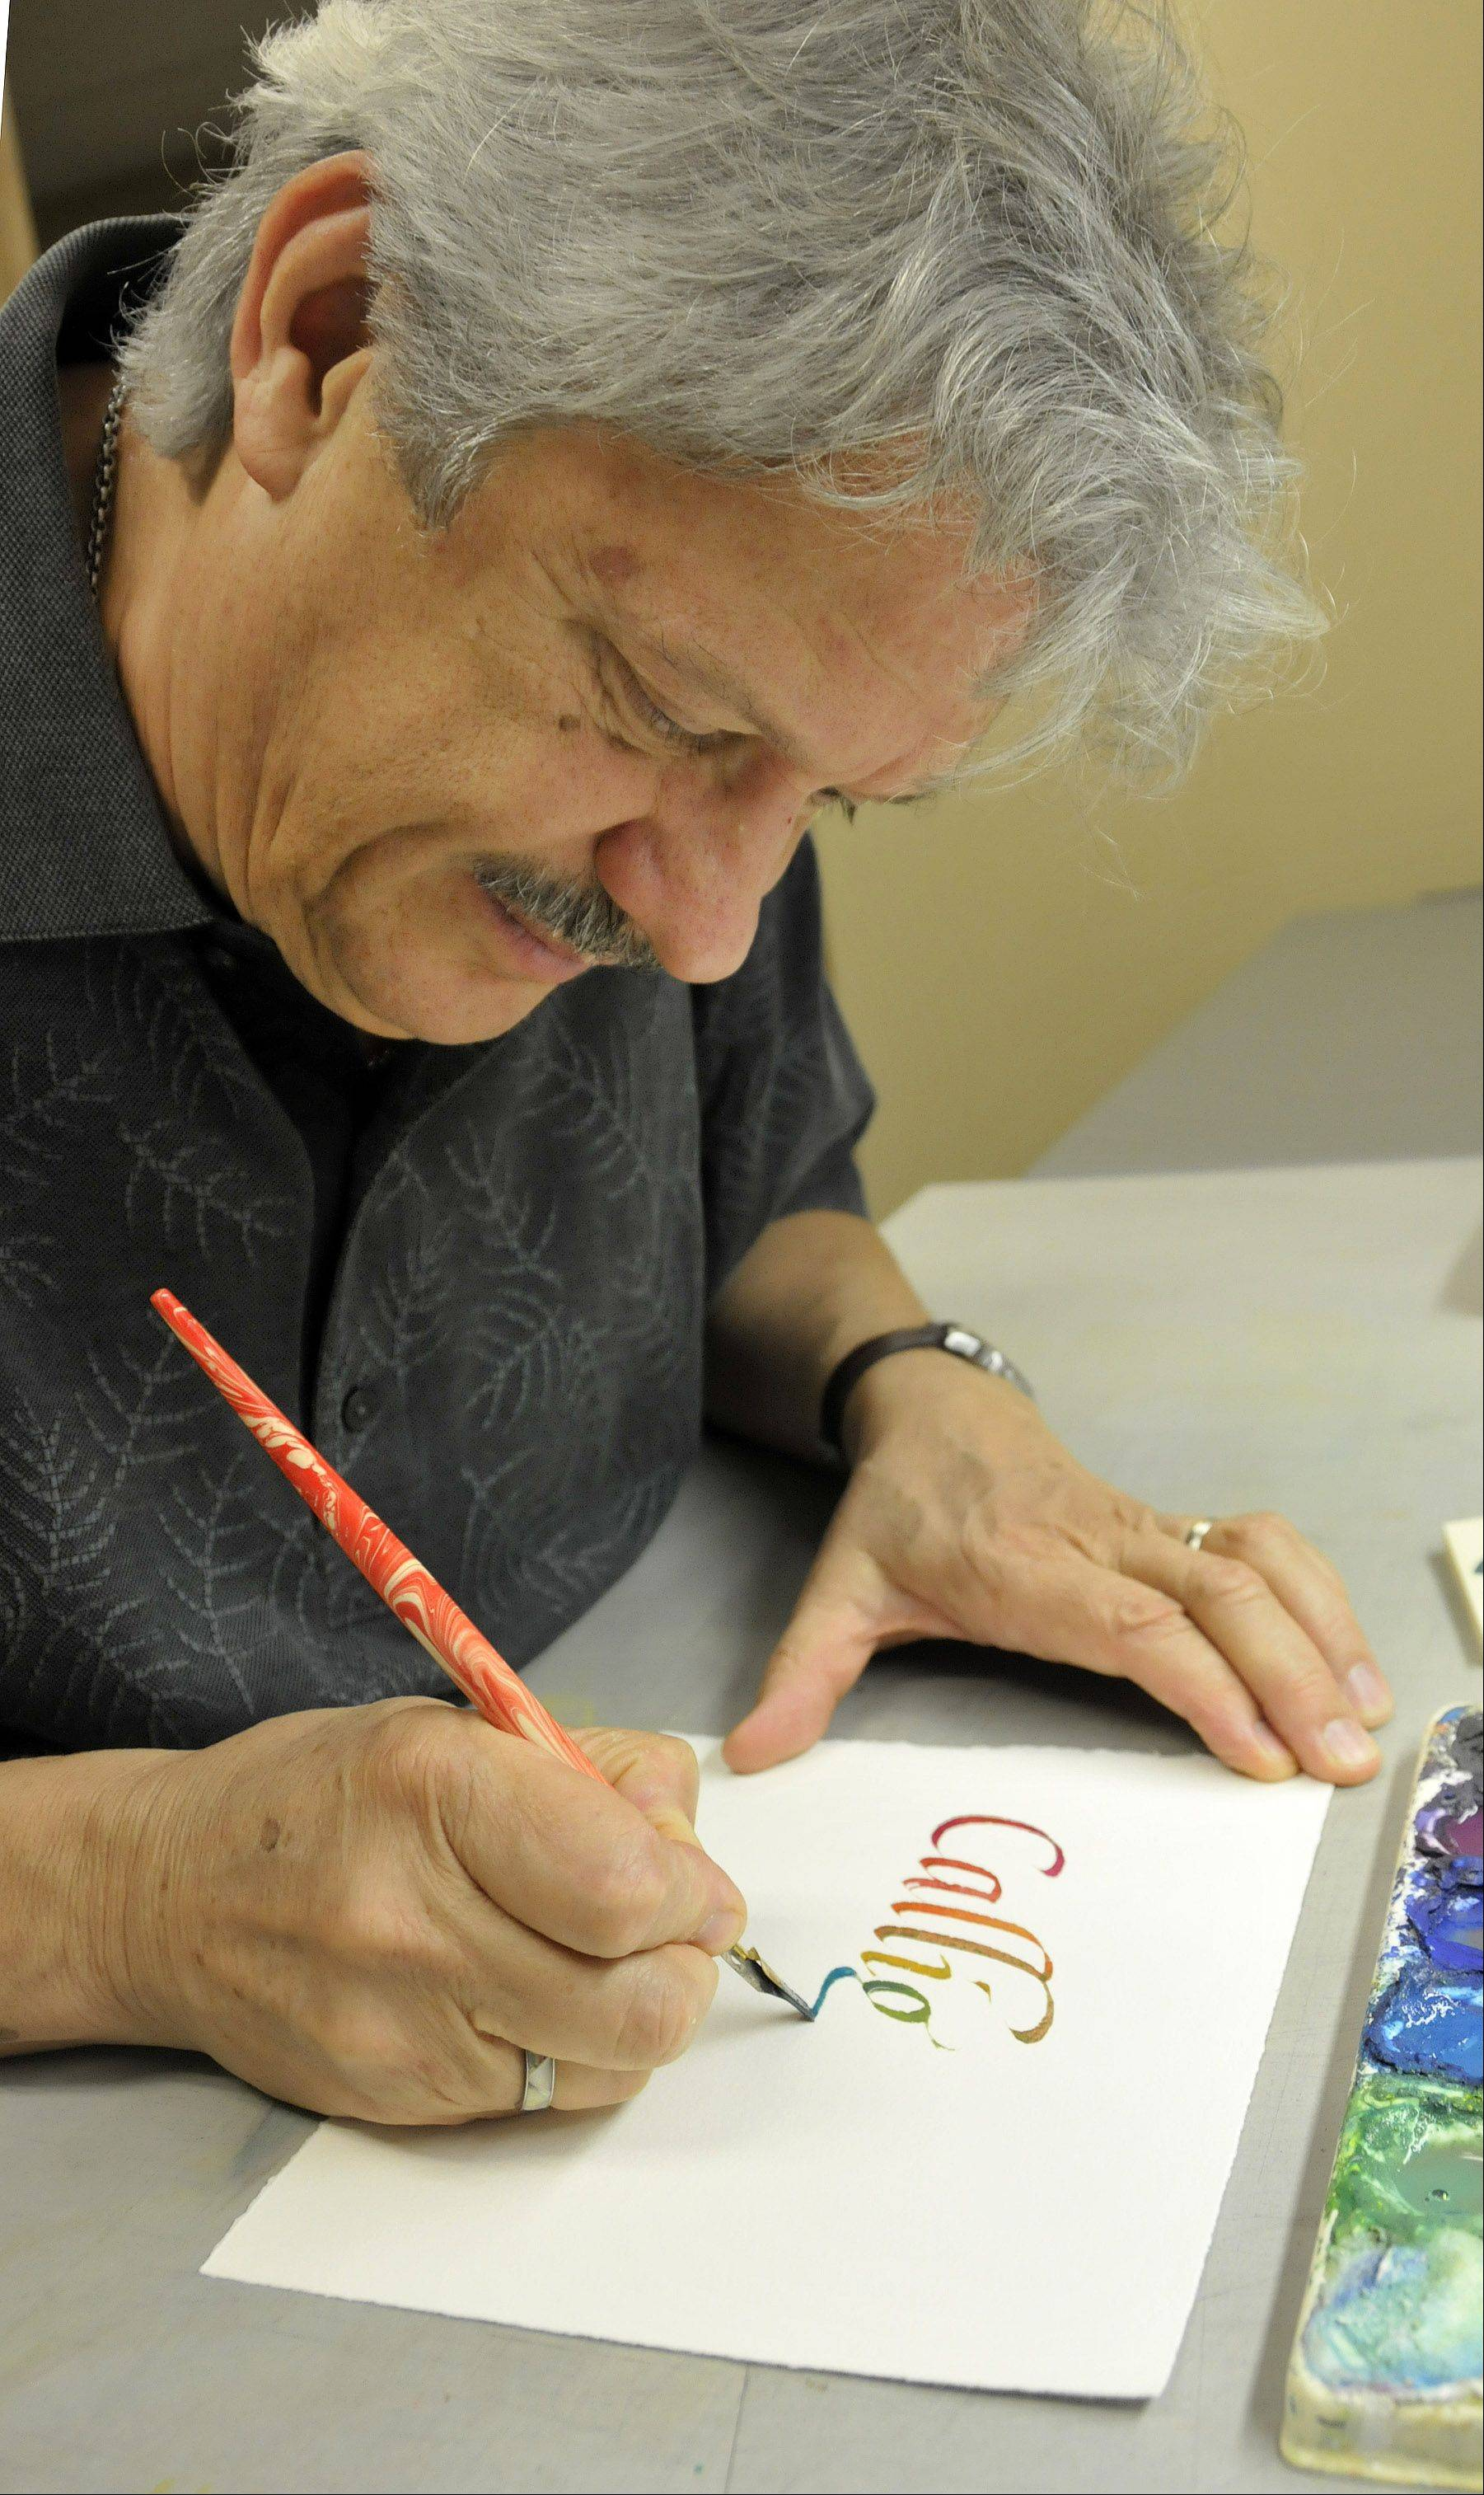 Timothy Botts illustrates his hand-drawn calligraphy. The way the color on the edges of the letters soaks into the paper is impossible to reproduce with a computer, he says. For multicolored work, he paints the watercolor onto his chisel-nibbed pen with a brush and then creates the letters.